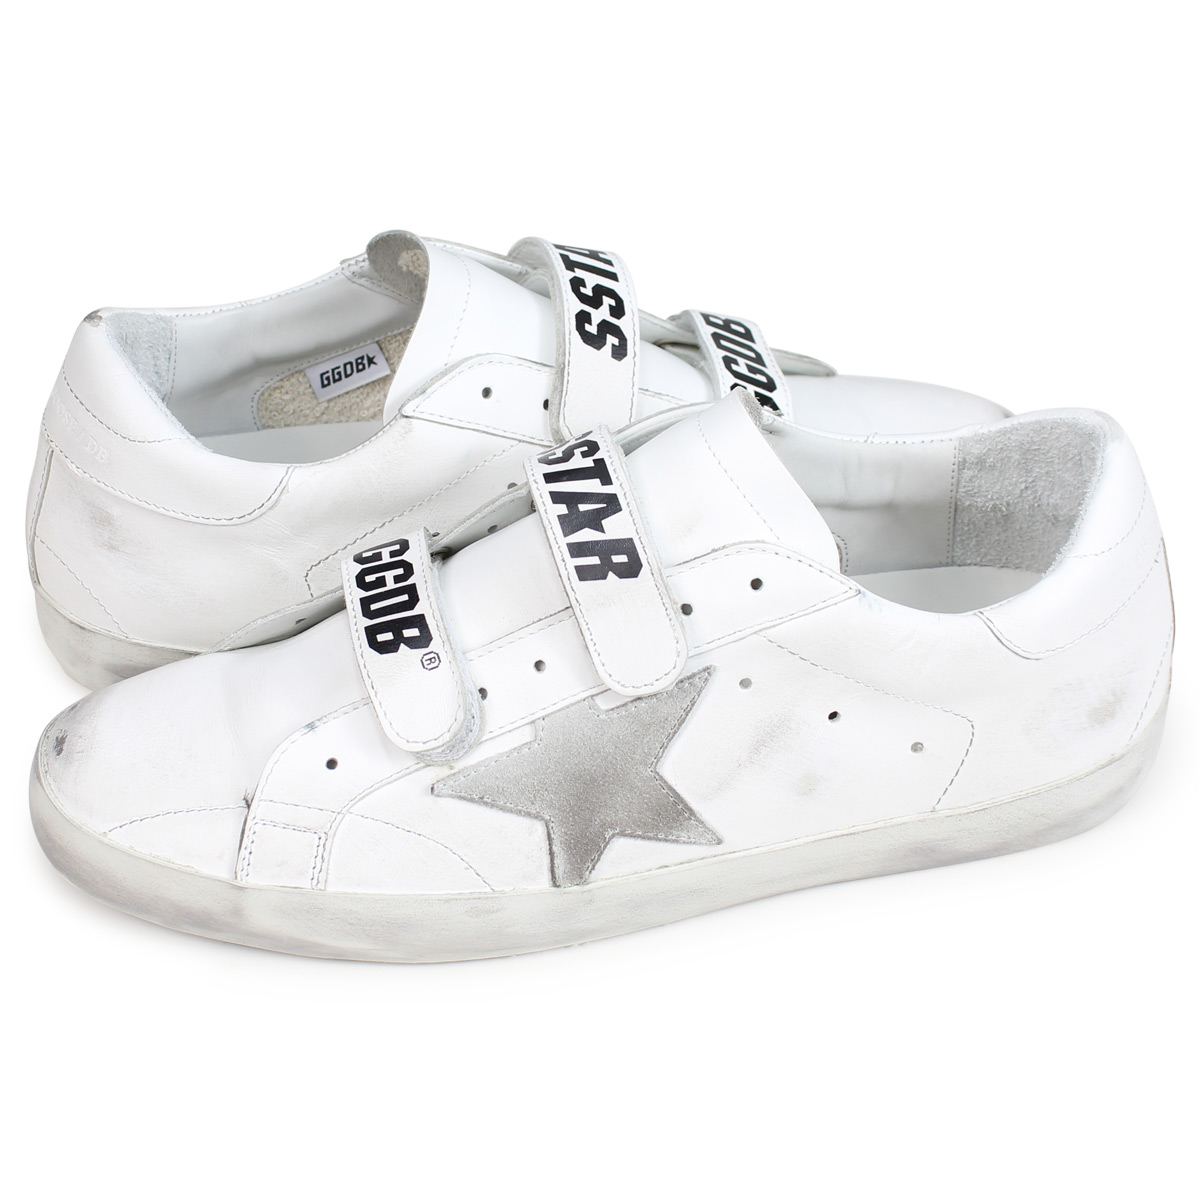 36207e20721d Golden Goose SNEAKERS SUPERSTAR OLD SCHOOL golden goose sneakers men  superstar white G33MS206 A1  load planned Shinnyu load in reservation  product 11 22 ...